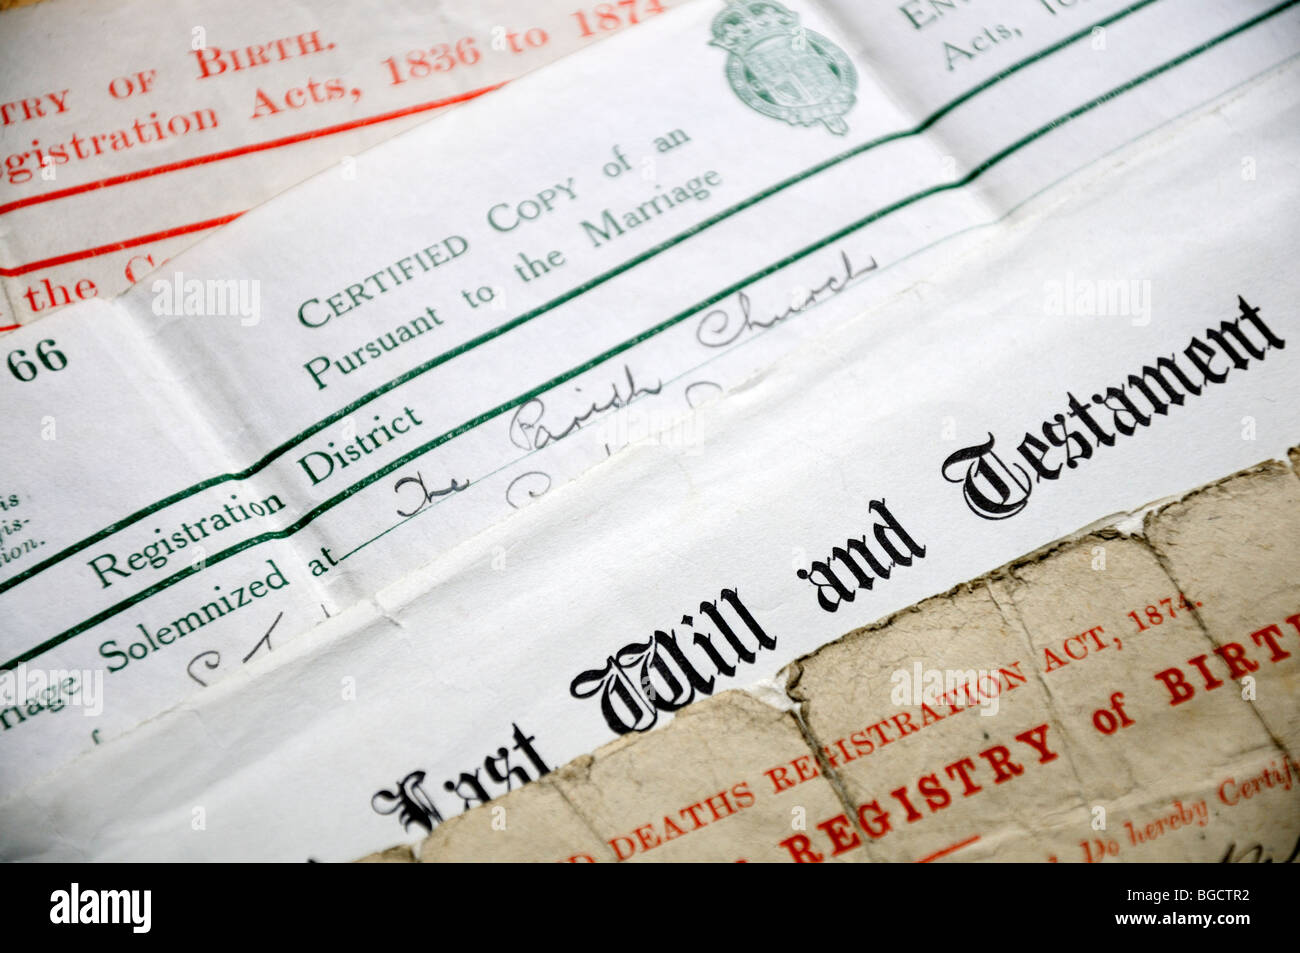 Genealogy documents - Copies of Certificates of birth, marriage and death, and last will and testament - Stock Image